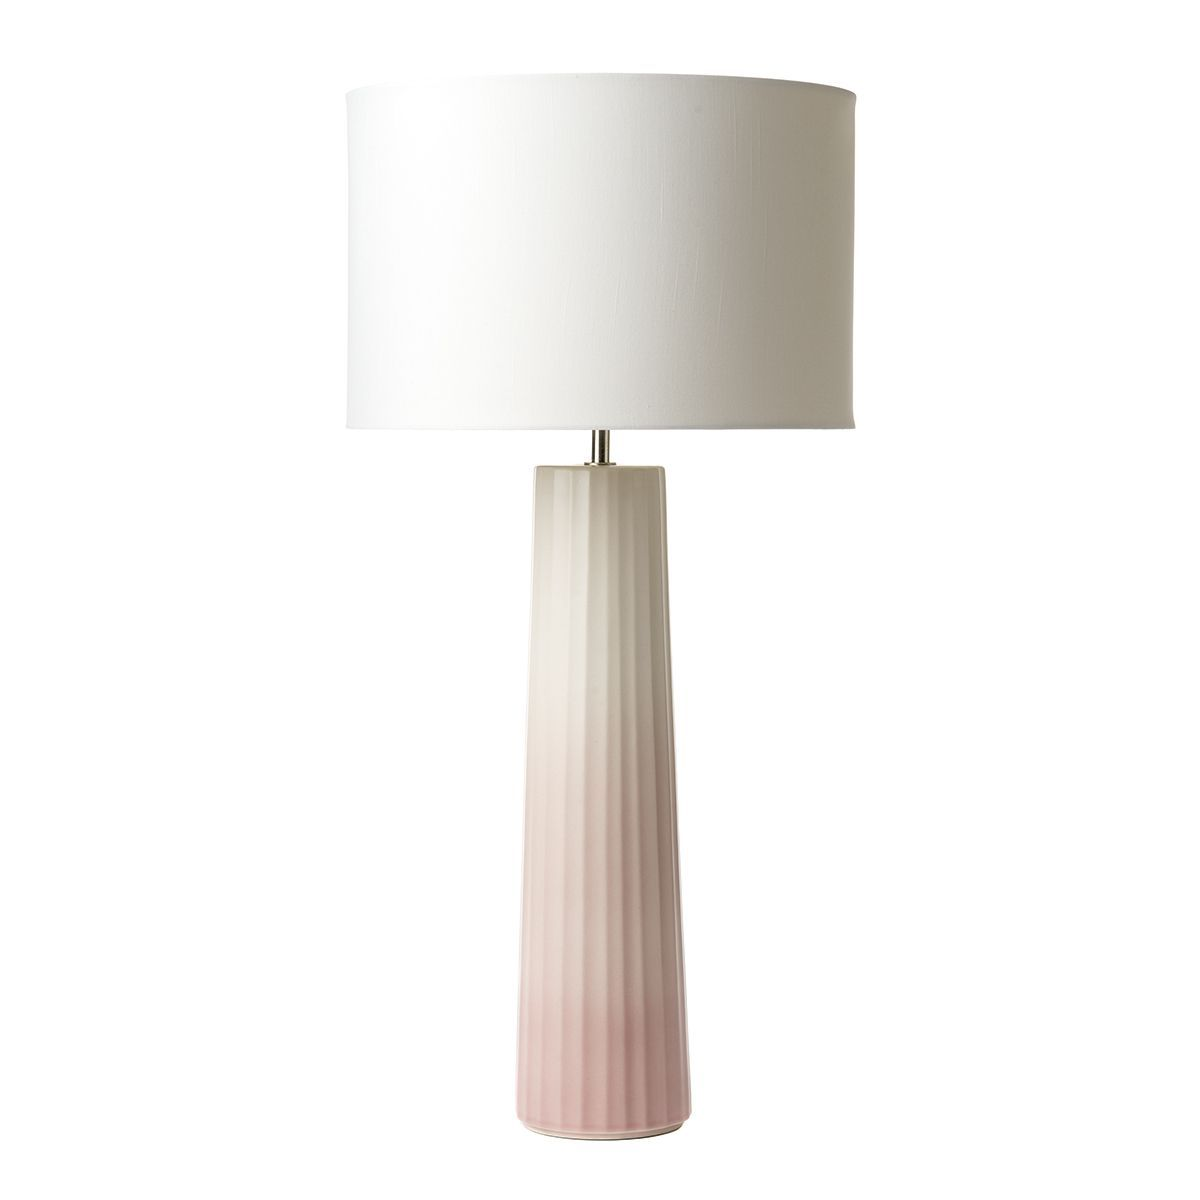 Abilo Table Lamp Pink Cream Ceramic Base Only